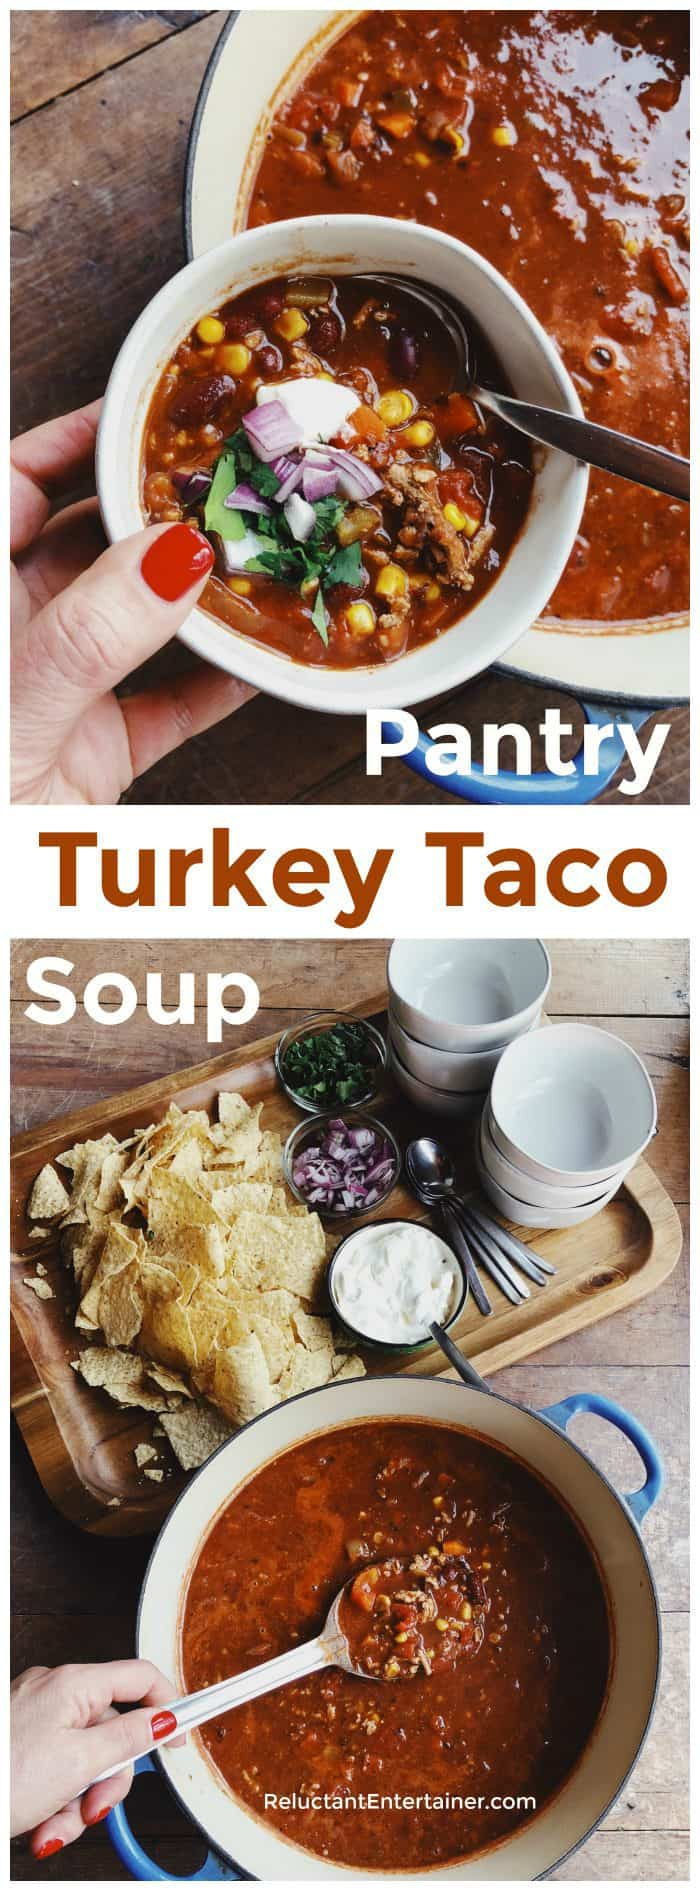 Pantry Turkey Taco Soup Recipe